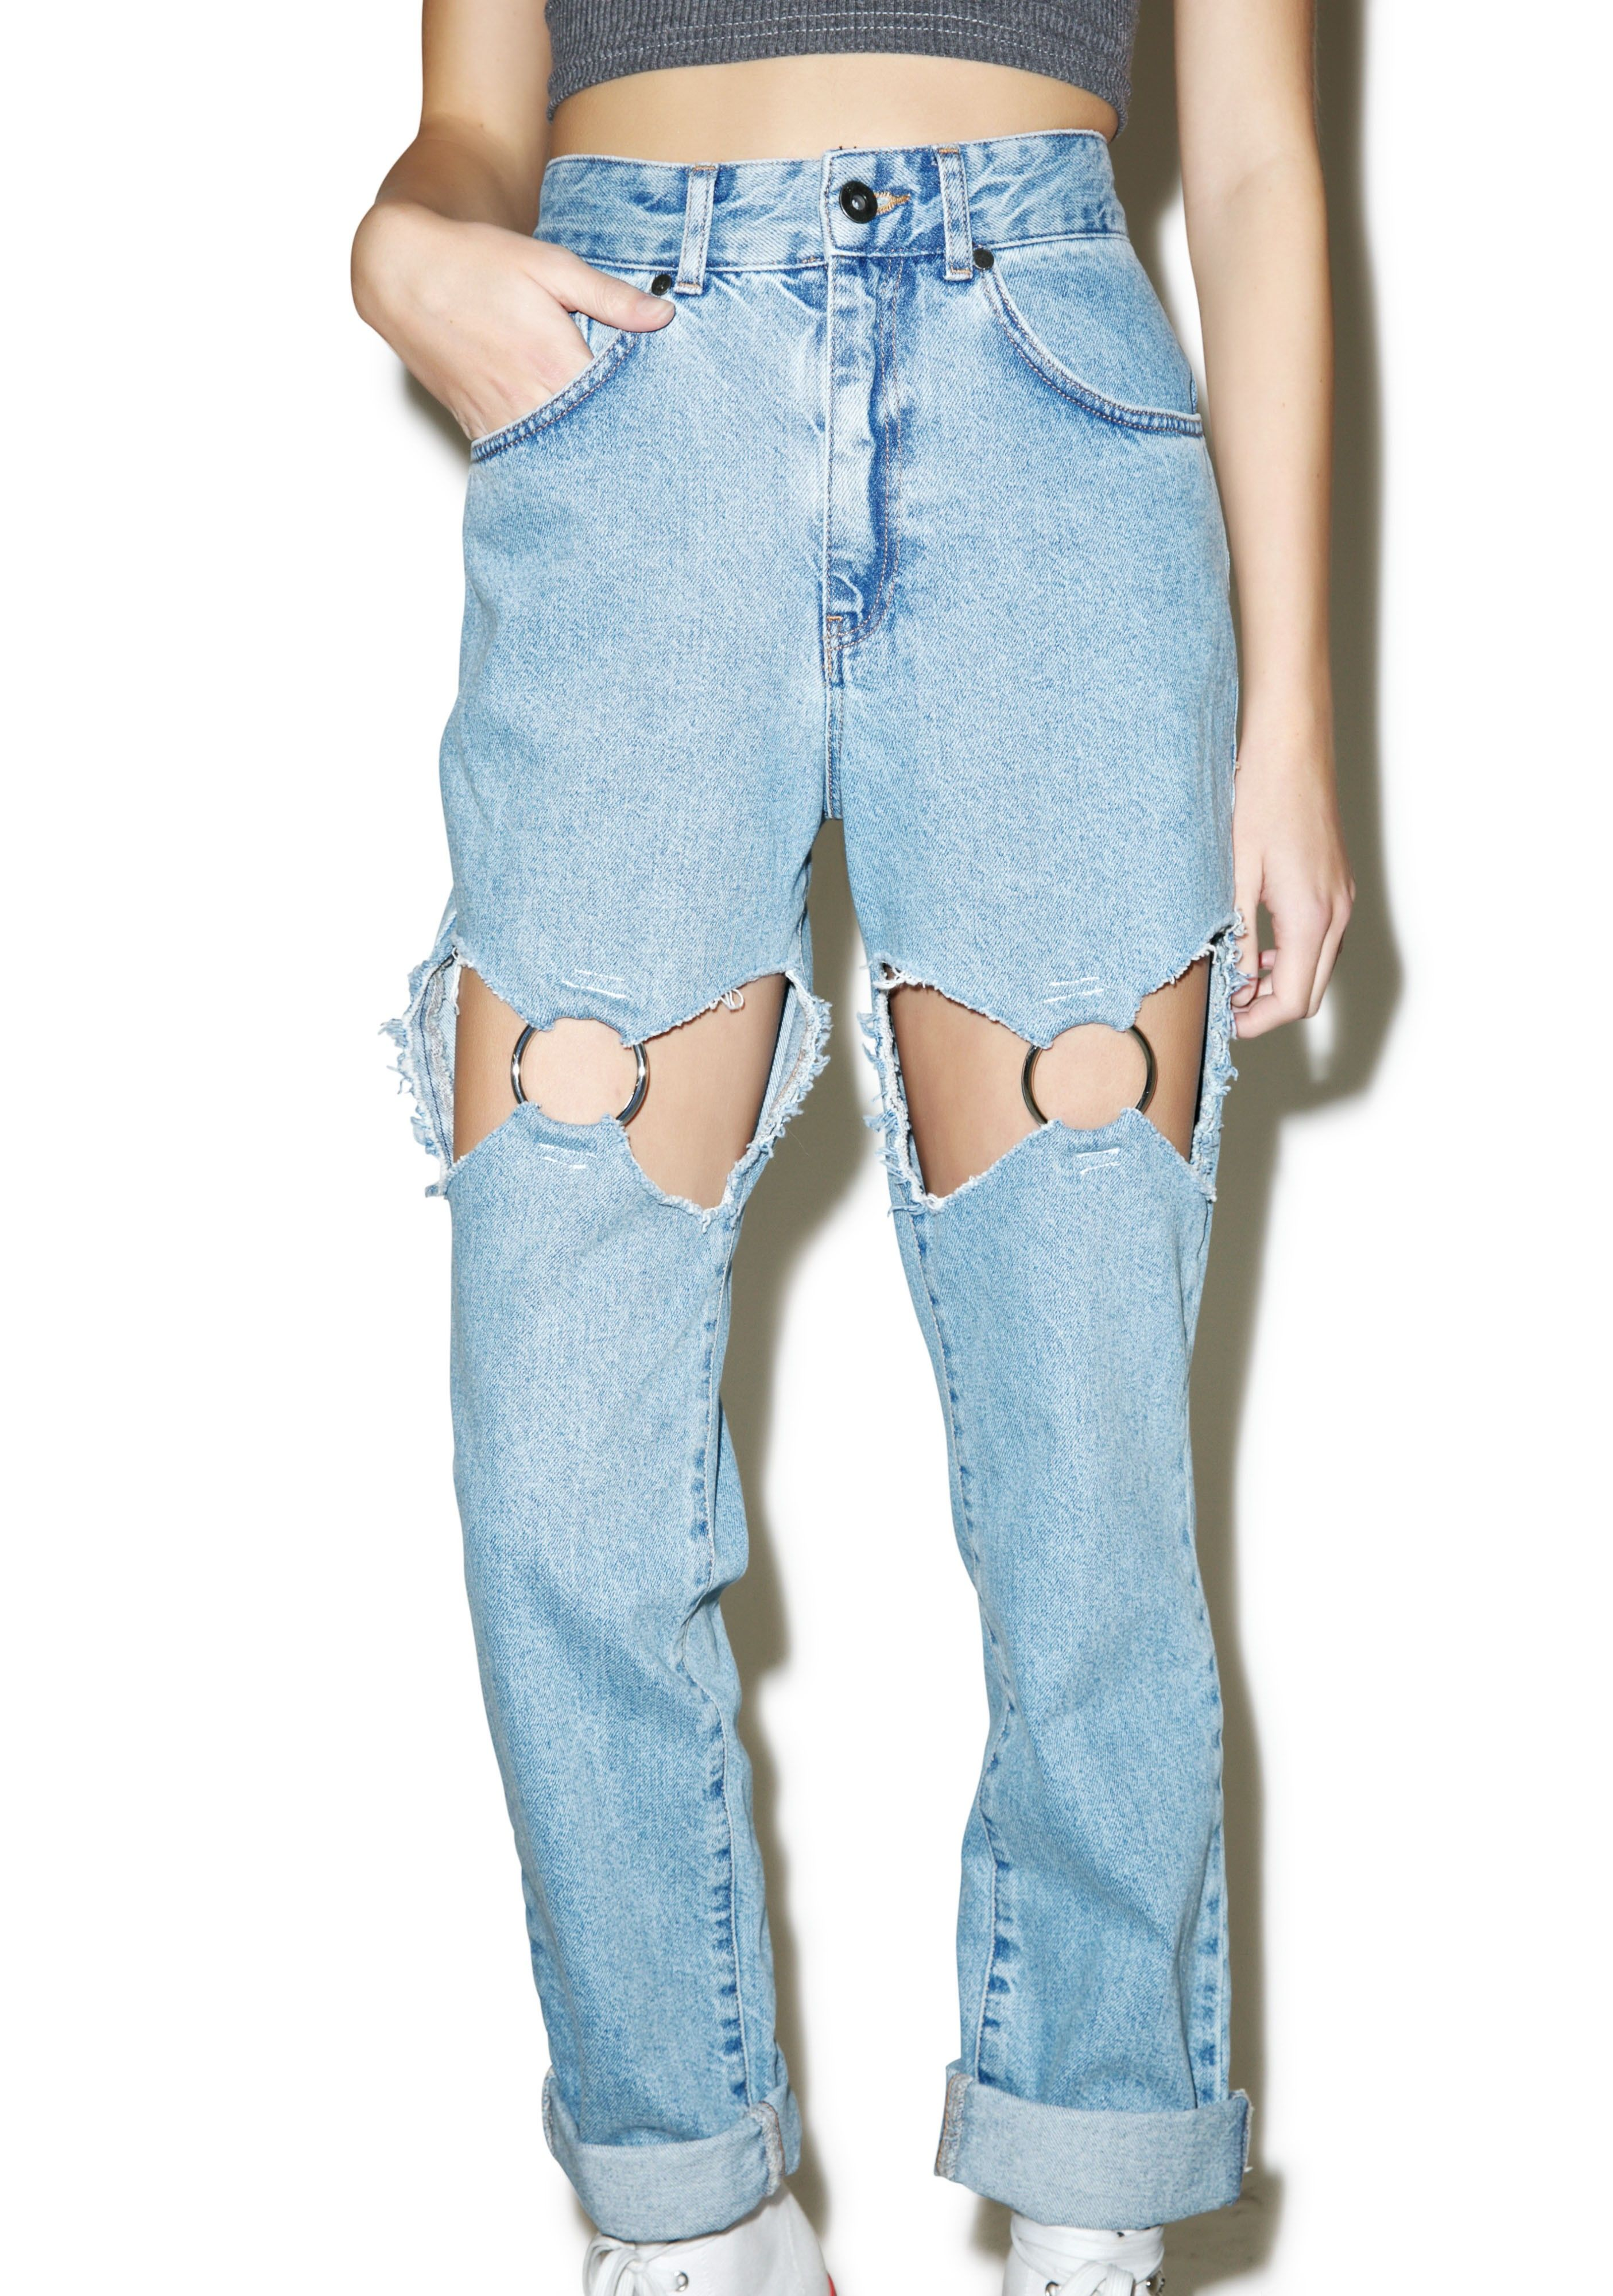 How to make jeans with ragged shorts The second life of things